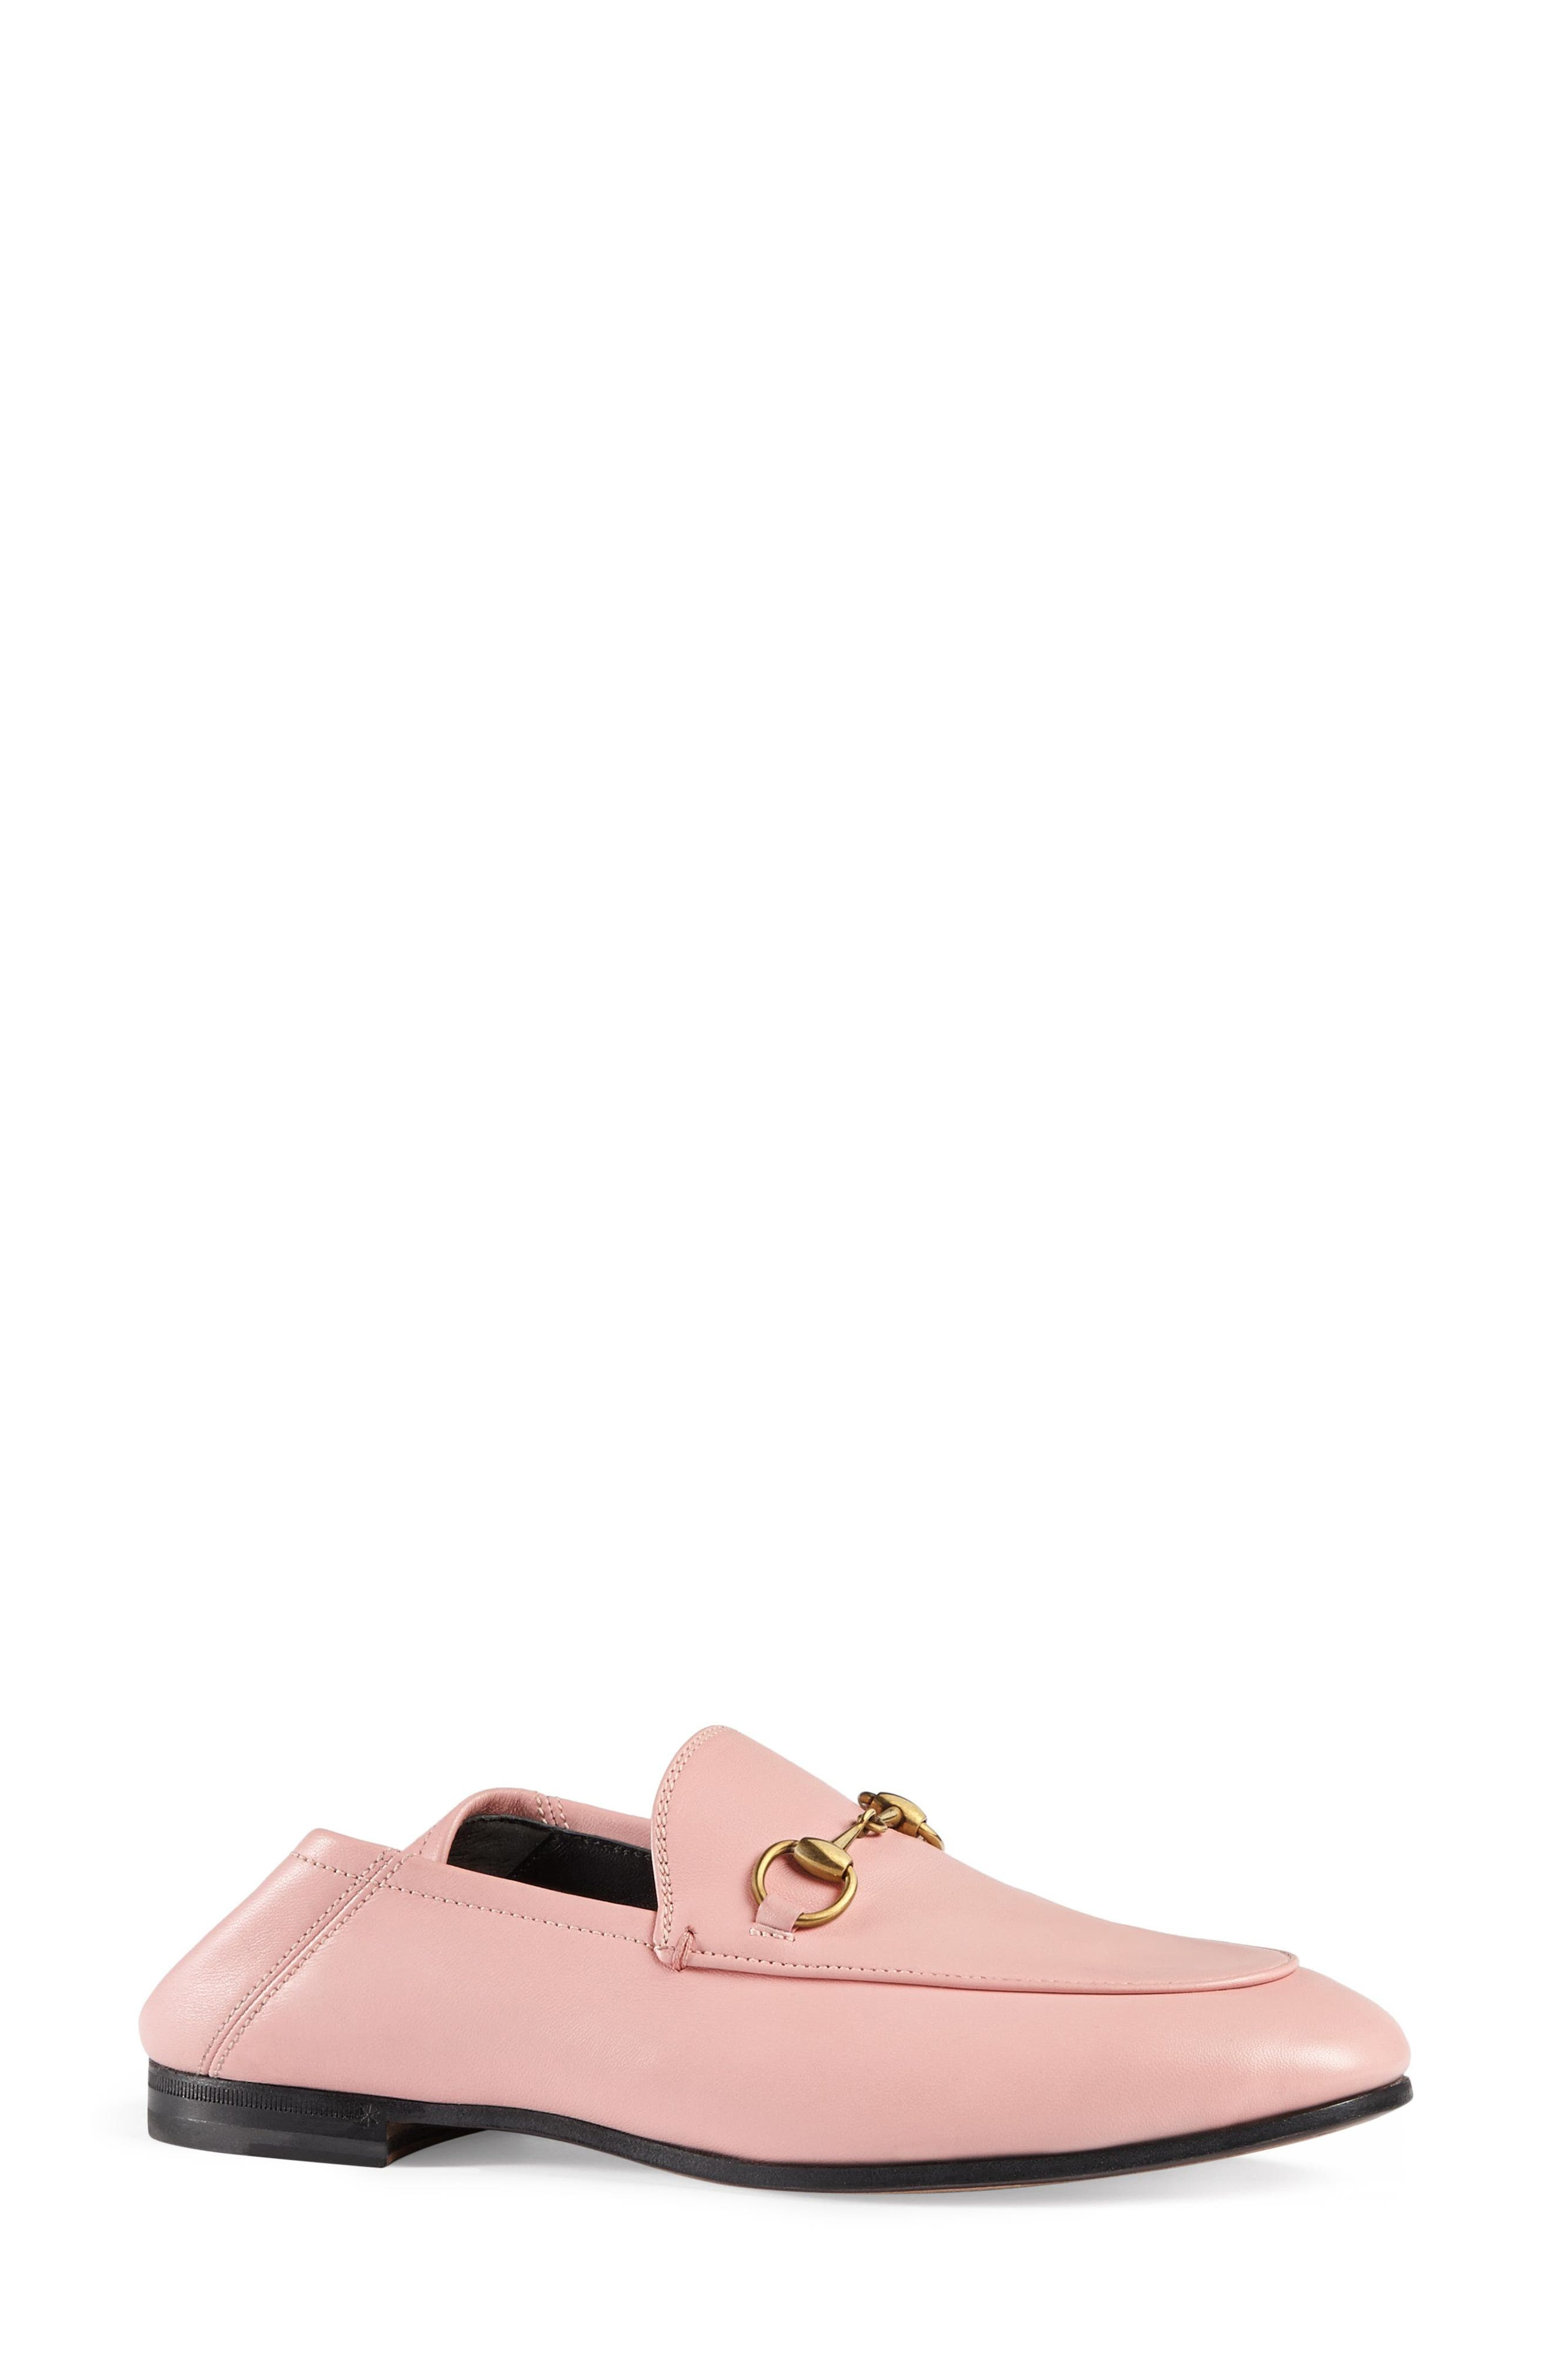 Alternate Image 1 Selected - Gucci Brixton Convertible Loafer (Women)